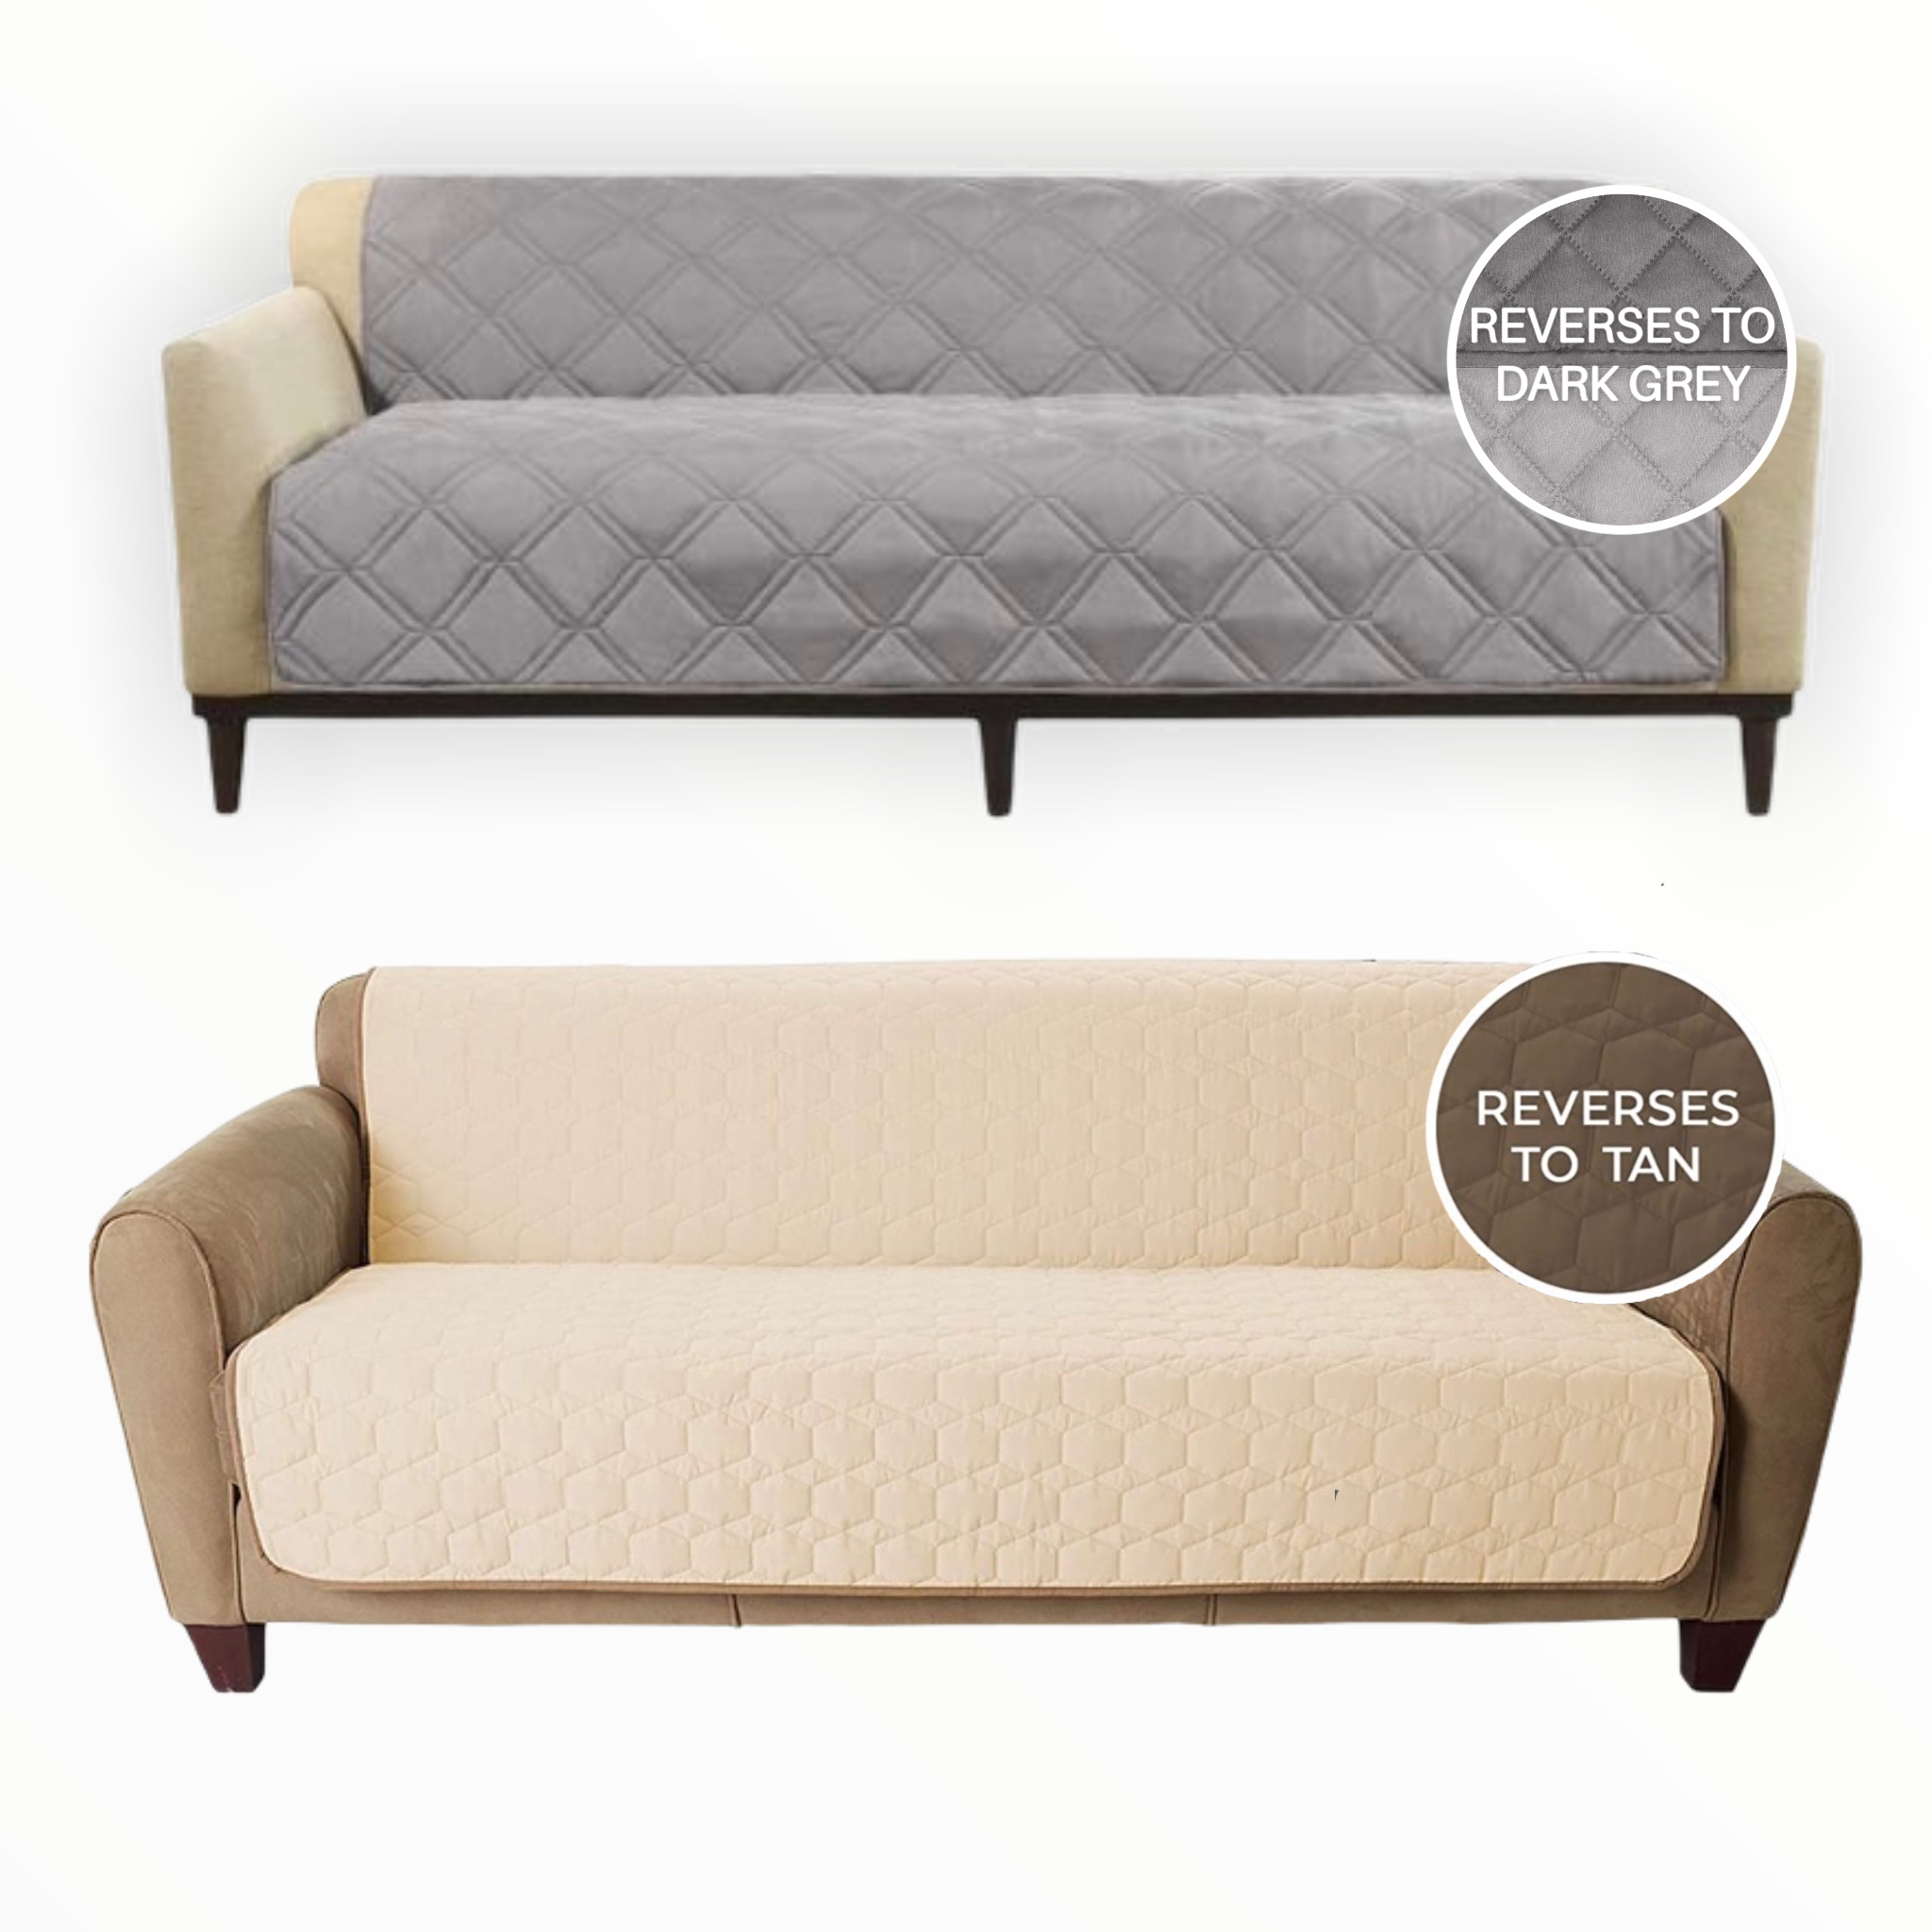 SureFit Reversible Couch / Bed Cover - Design makes this couch cover a perfect fit for all types of furniture including your sofa, futon or bed. - Super durable protecting from pets, kids and all kinds of stains! -  Machine washable! - Available in 2 reversible colors: Light Gray / Dark Grey and Mocha / Cream - SHIPS IMMEDIATELY!